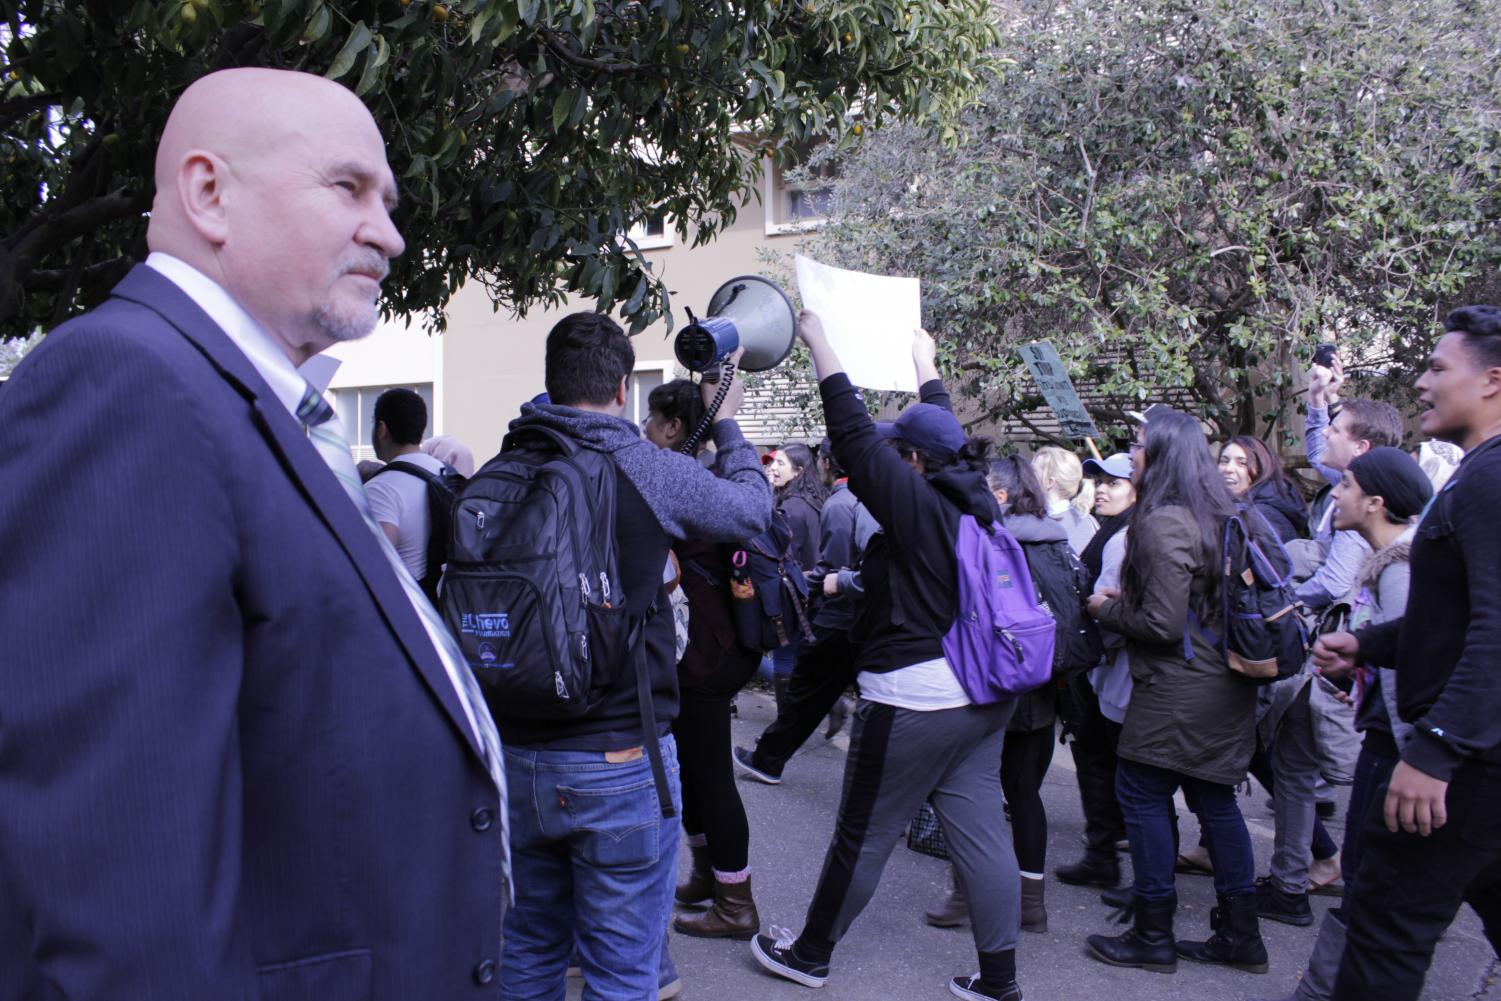 Students protesting the inaugration of President Donald Trump walk past Sac State President Robert Nelsen as he looks on. Those protests were cathartic, but protests of a tuition raise could make a real difference.